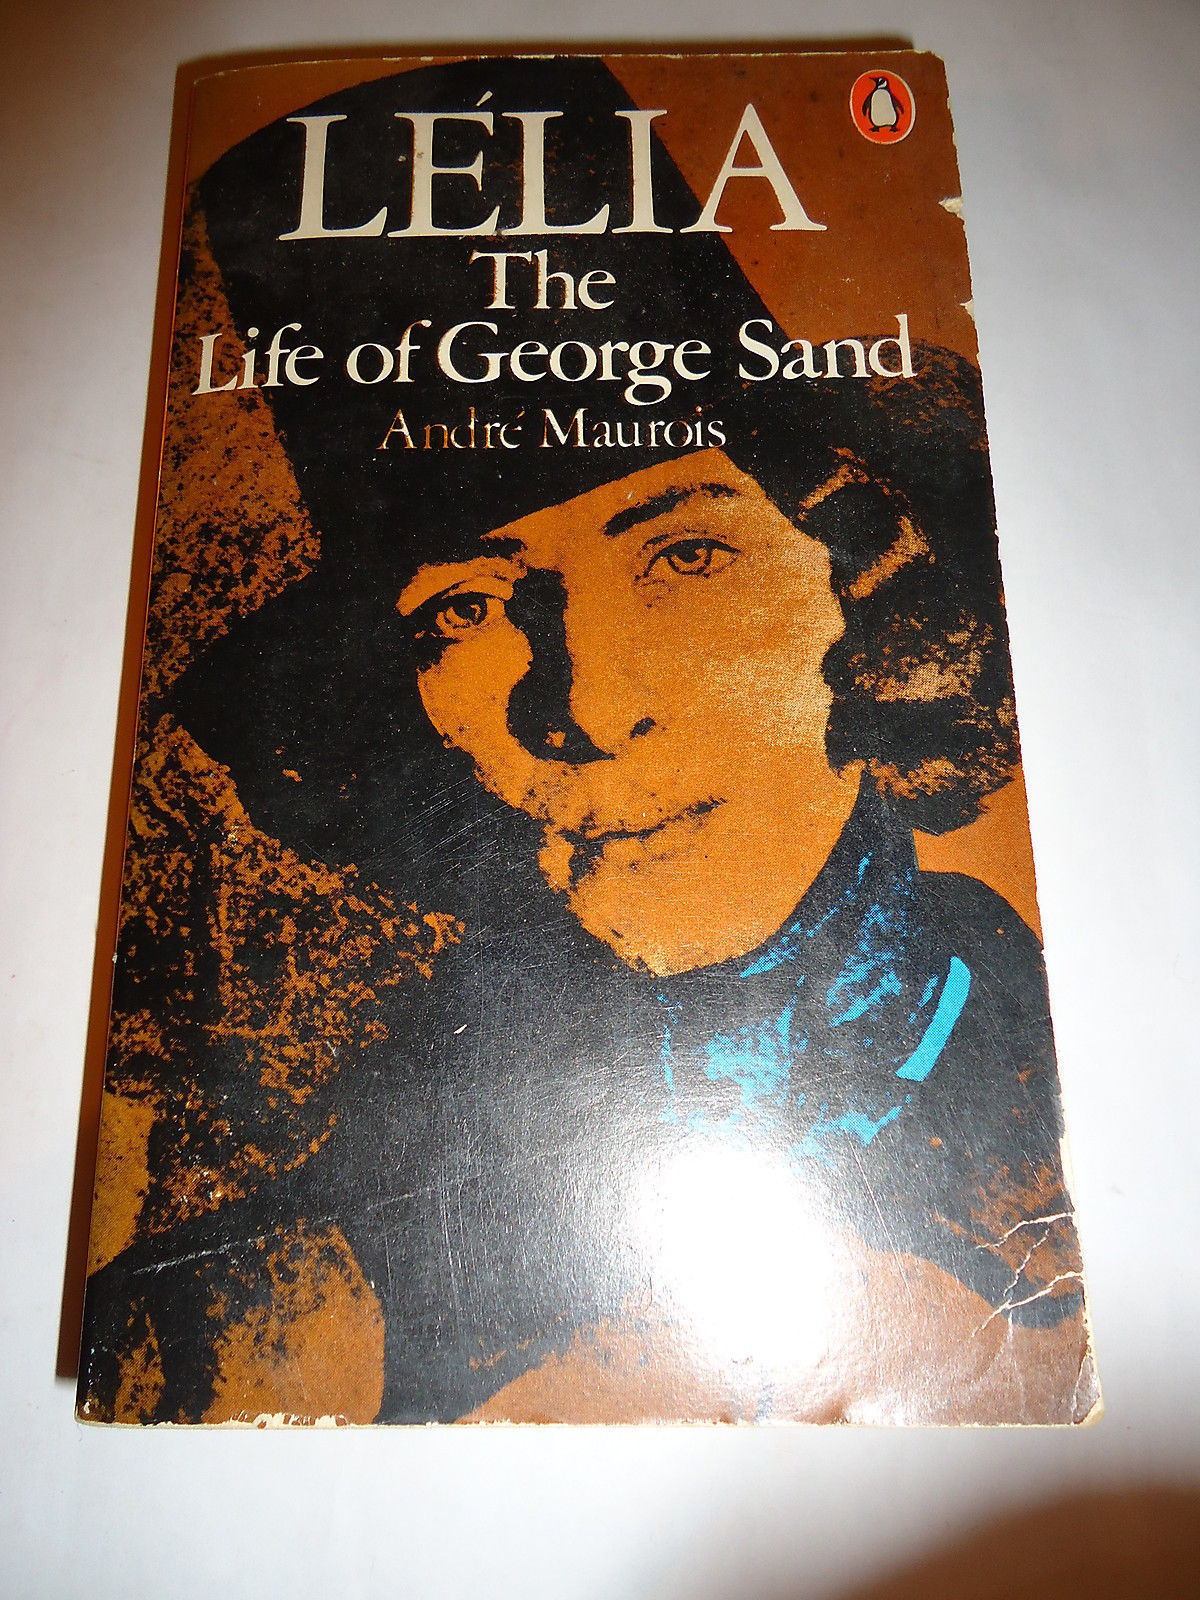 the life and works of george sand Who knows more than any one about the life and works of george sand, has been my guide and has helped me greatly with his wise advice.